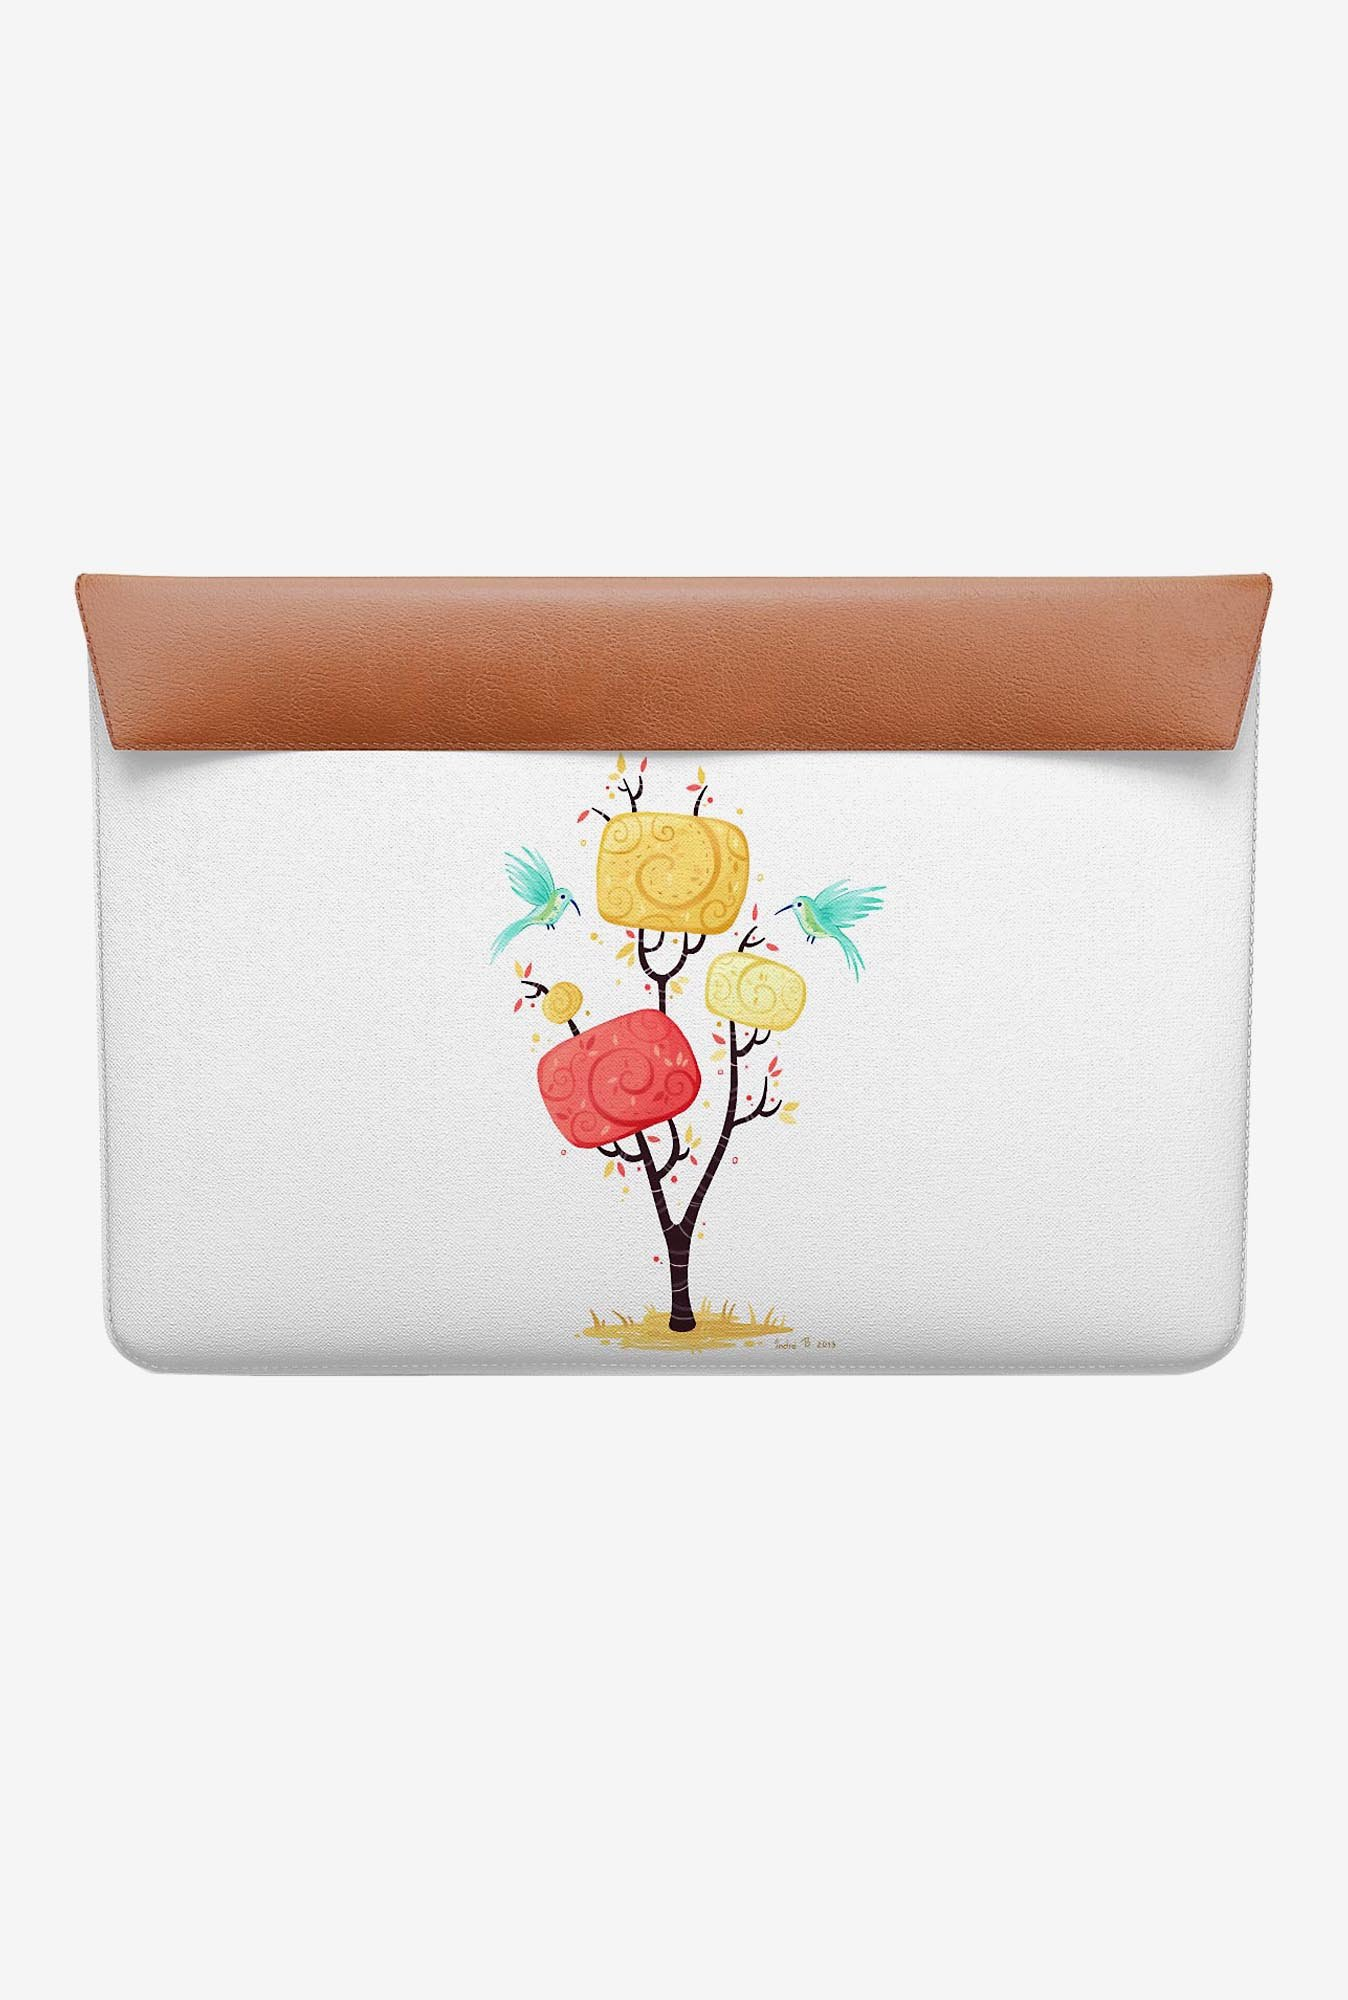 DailyObjects Autumn Birds MacBook Air 11 Envelope Sleeve